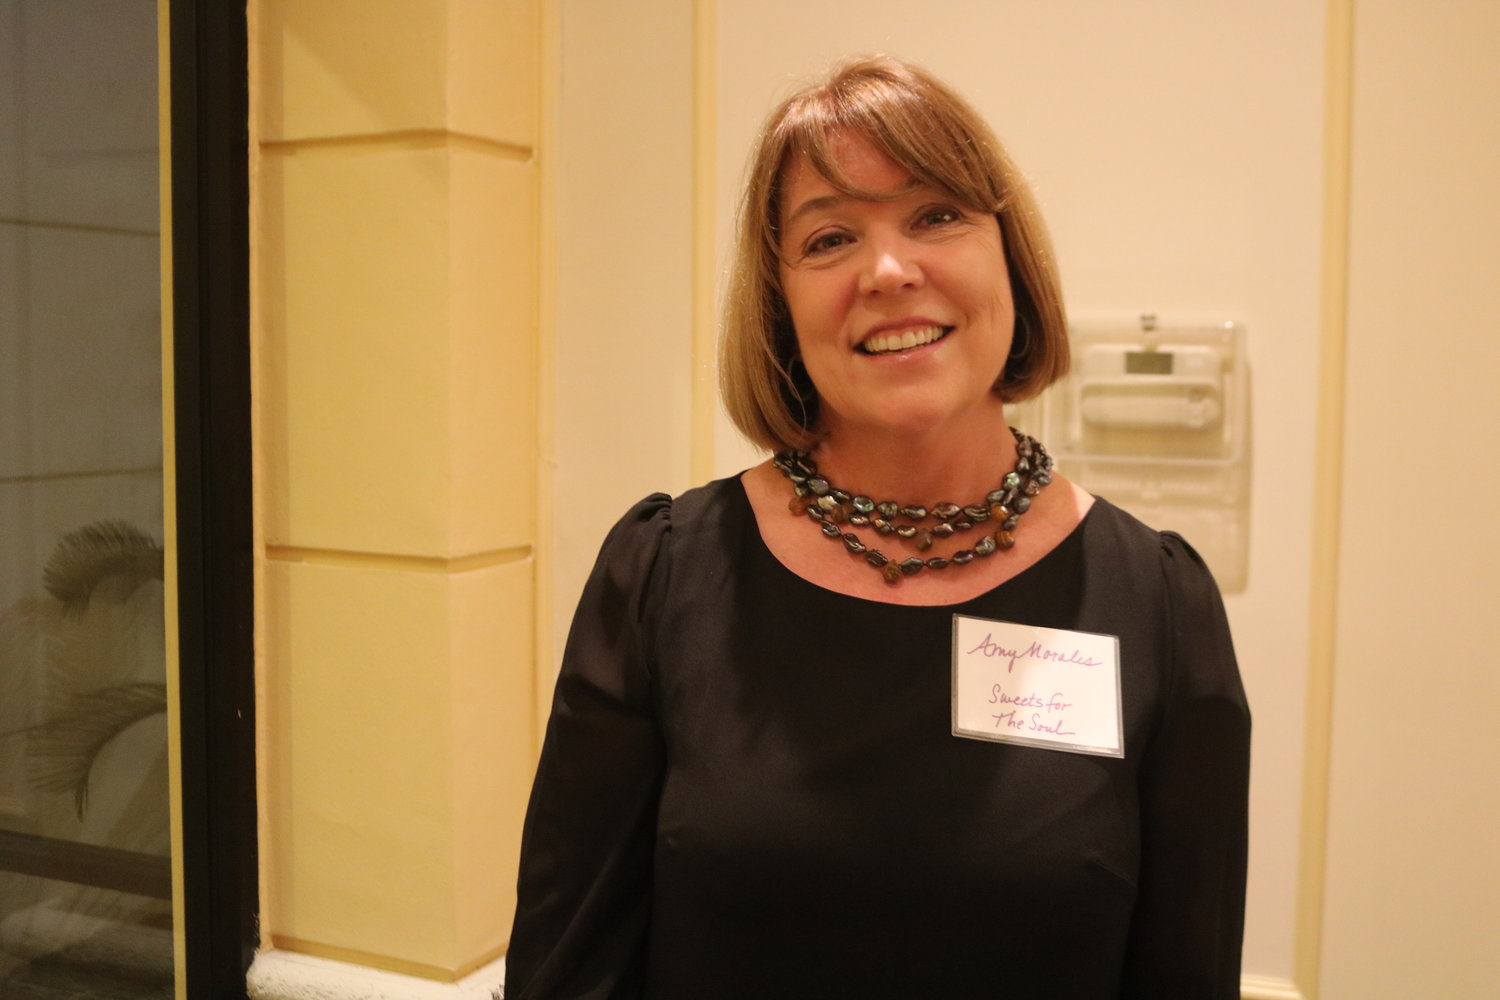 2.	Amy Morales attended the WFA as a new member and introduced the ladies of hospitality to her upcoming business.